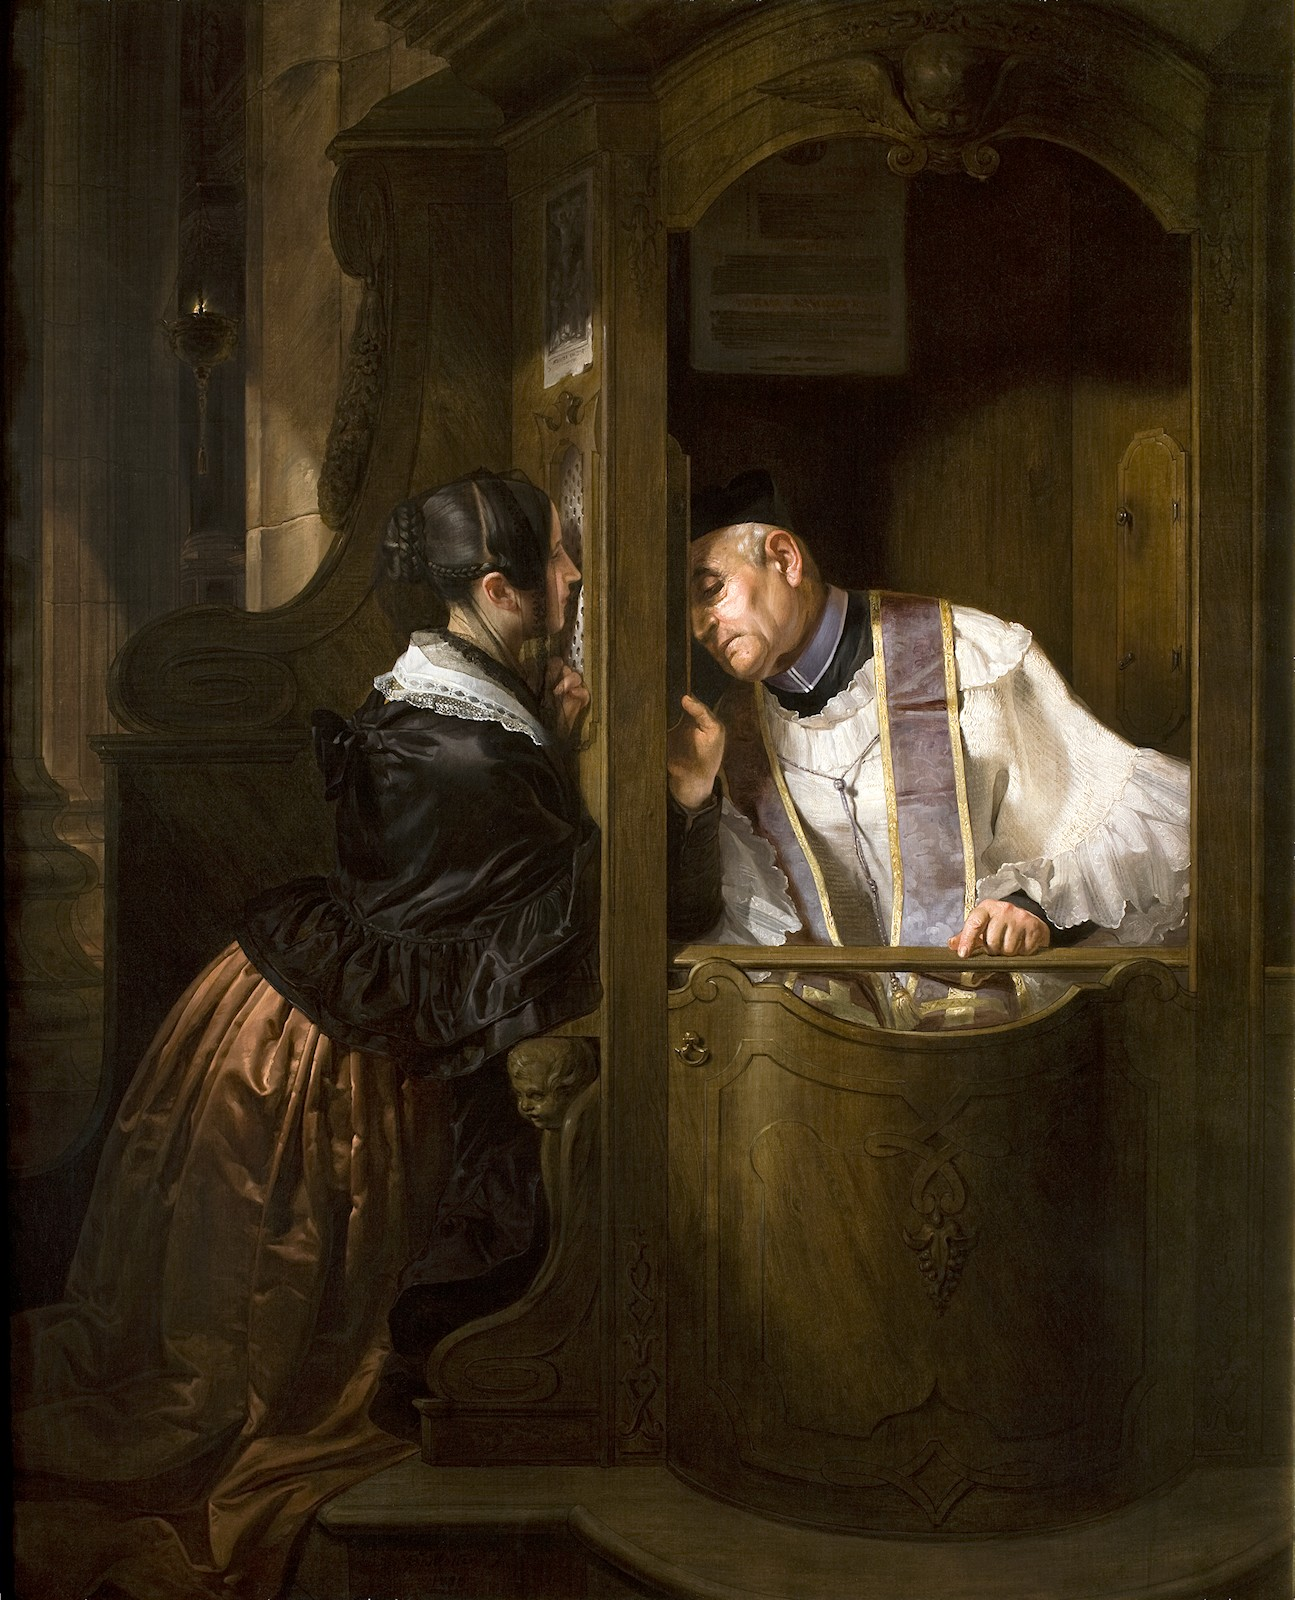 http://gratefultothedead.files.wordpress.com/2012/06/the-confession-by-giuseppe-molteni1.jpg